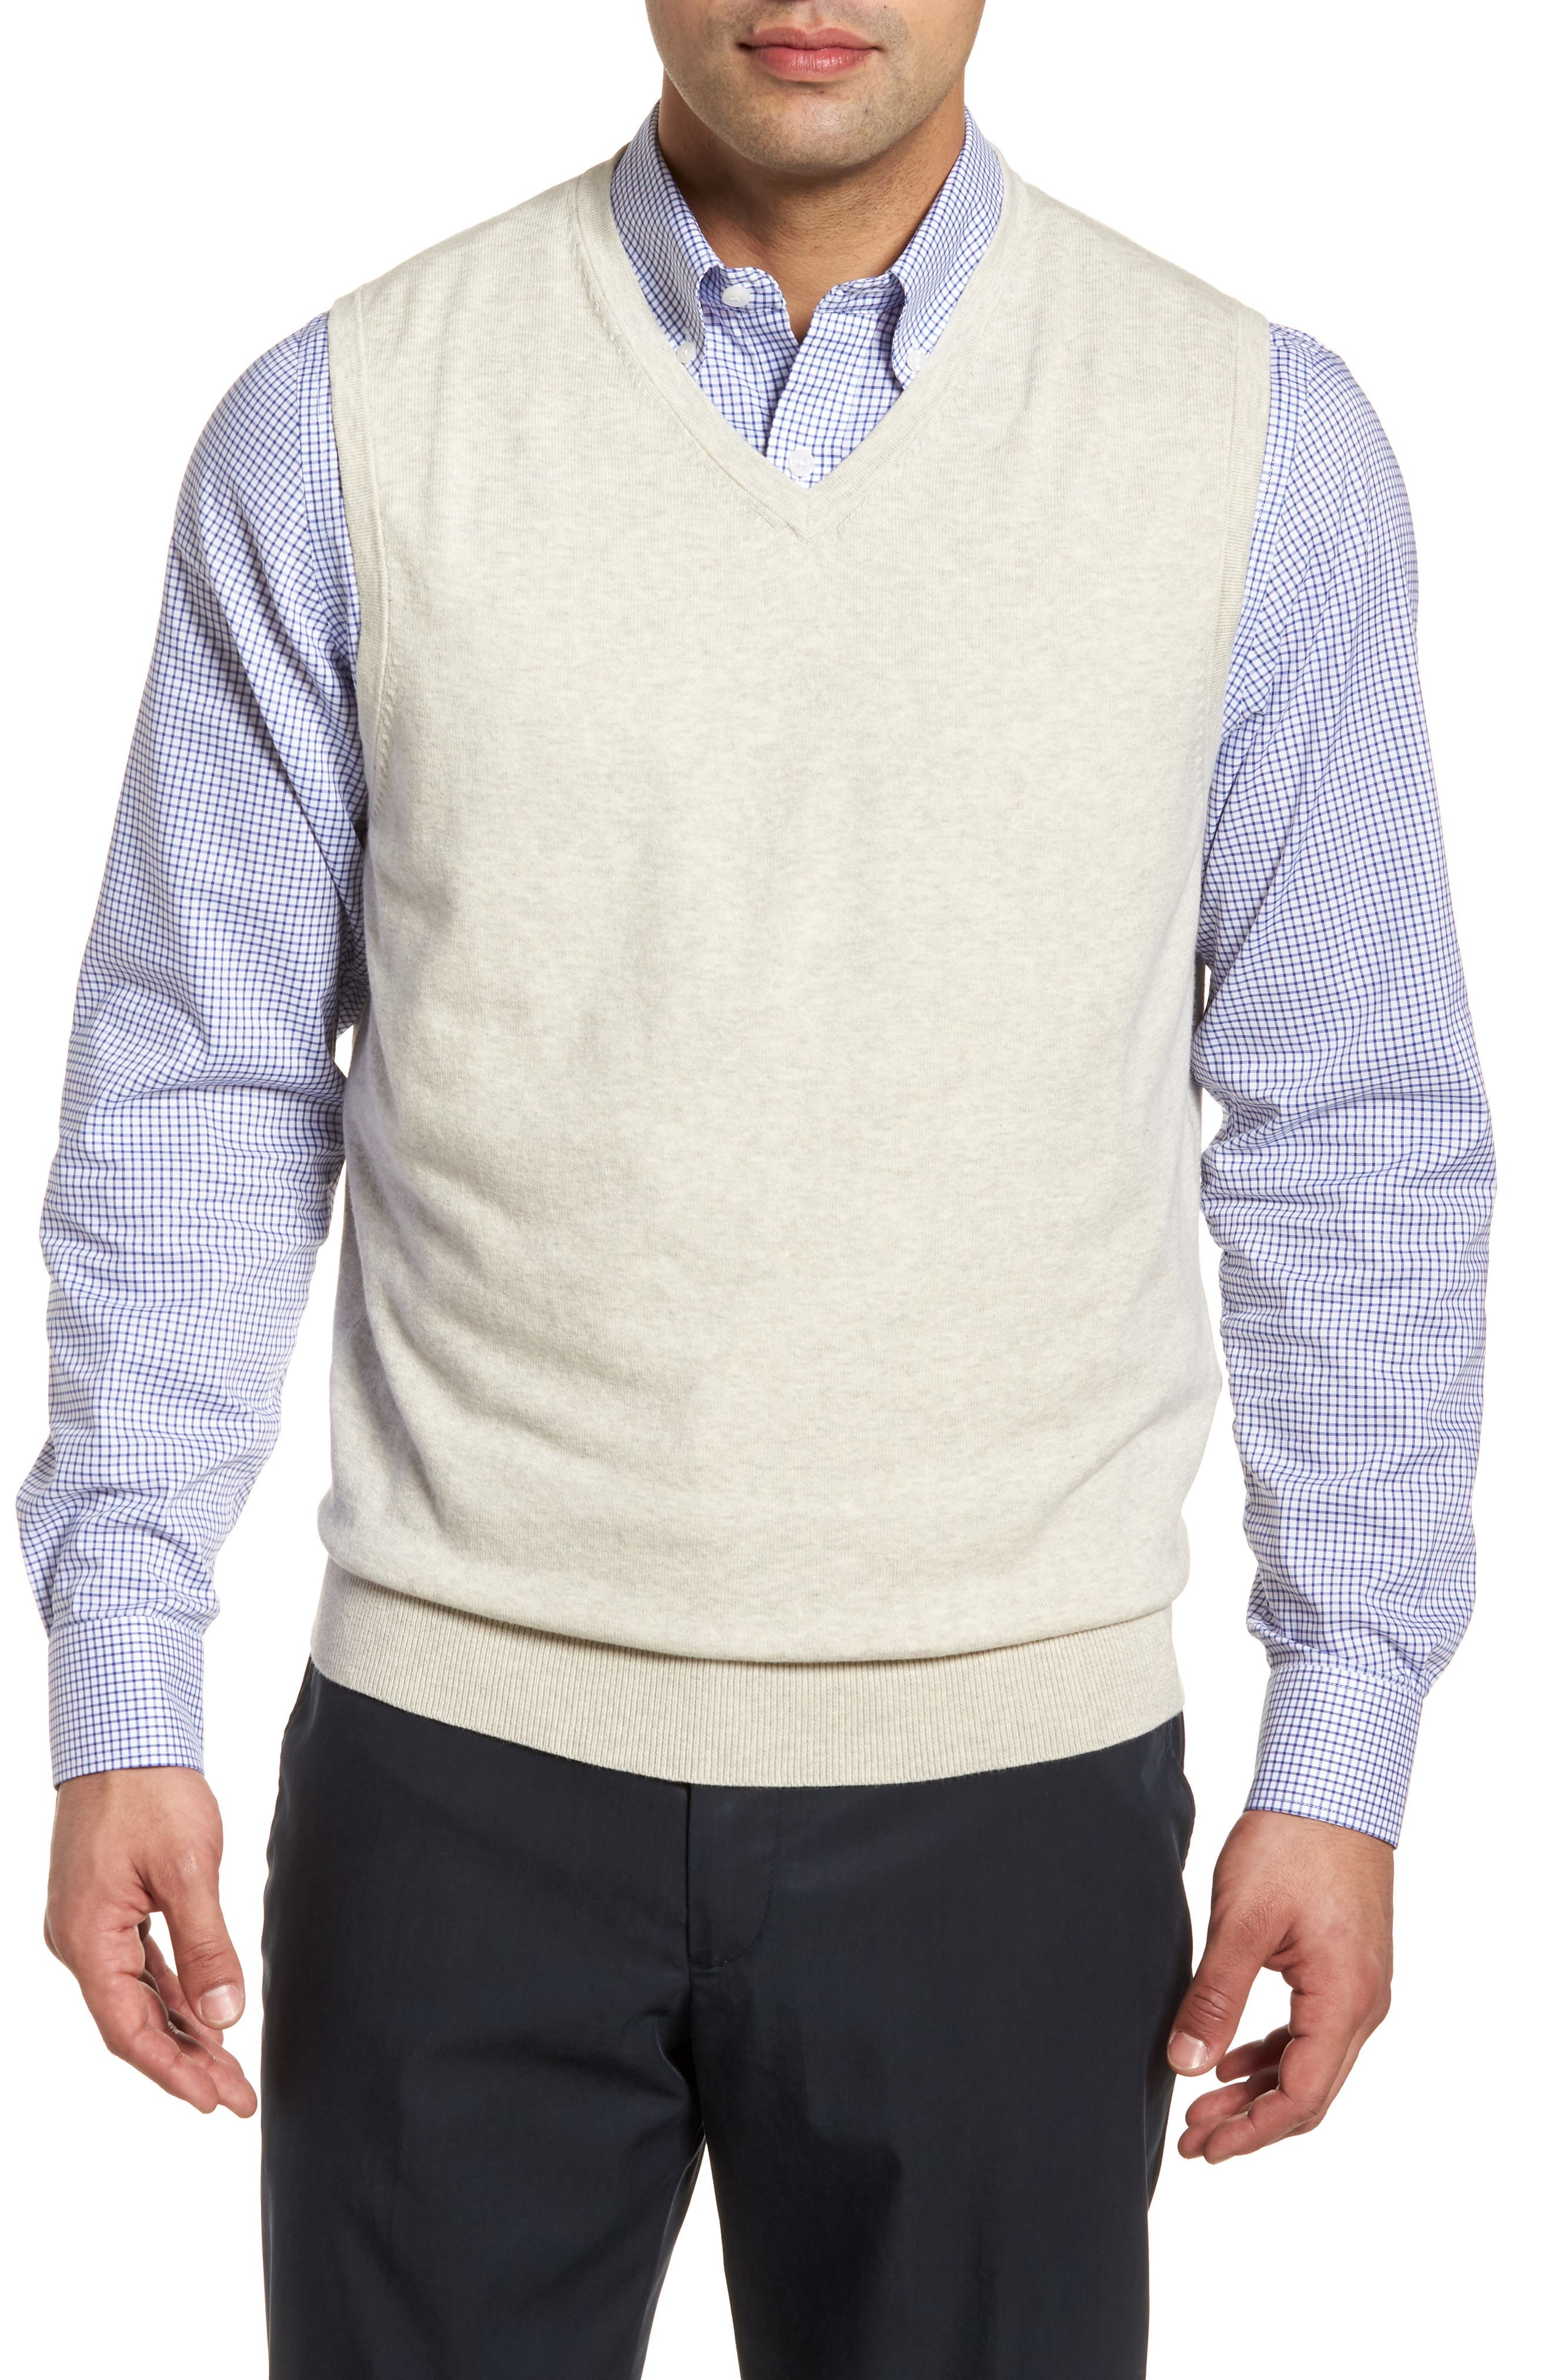 Lakemont Classic Fit Sweater Vest,                             Main thumbnail 1, color,                             OATMEAL HEATHER